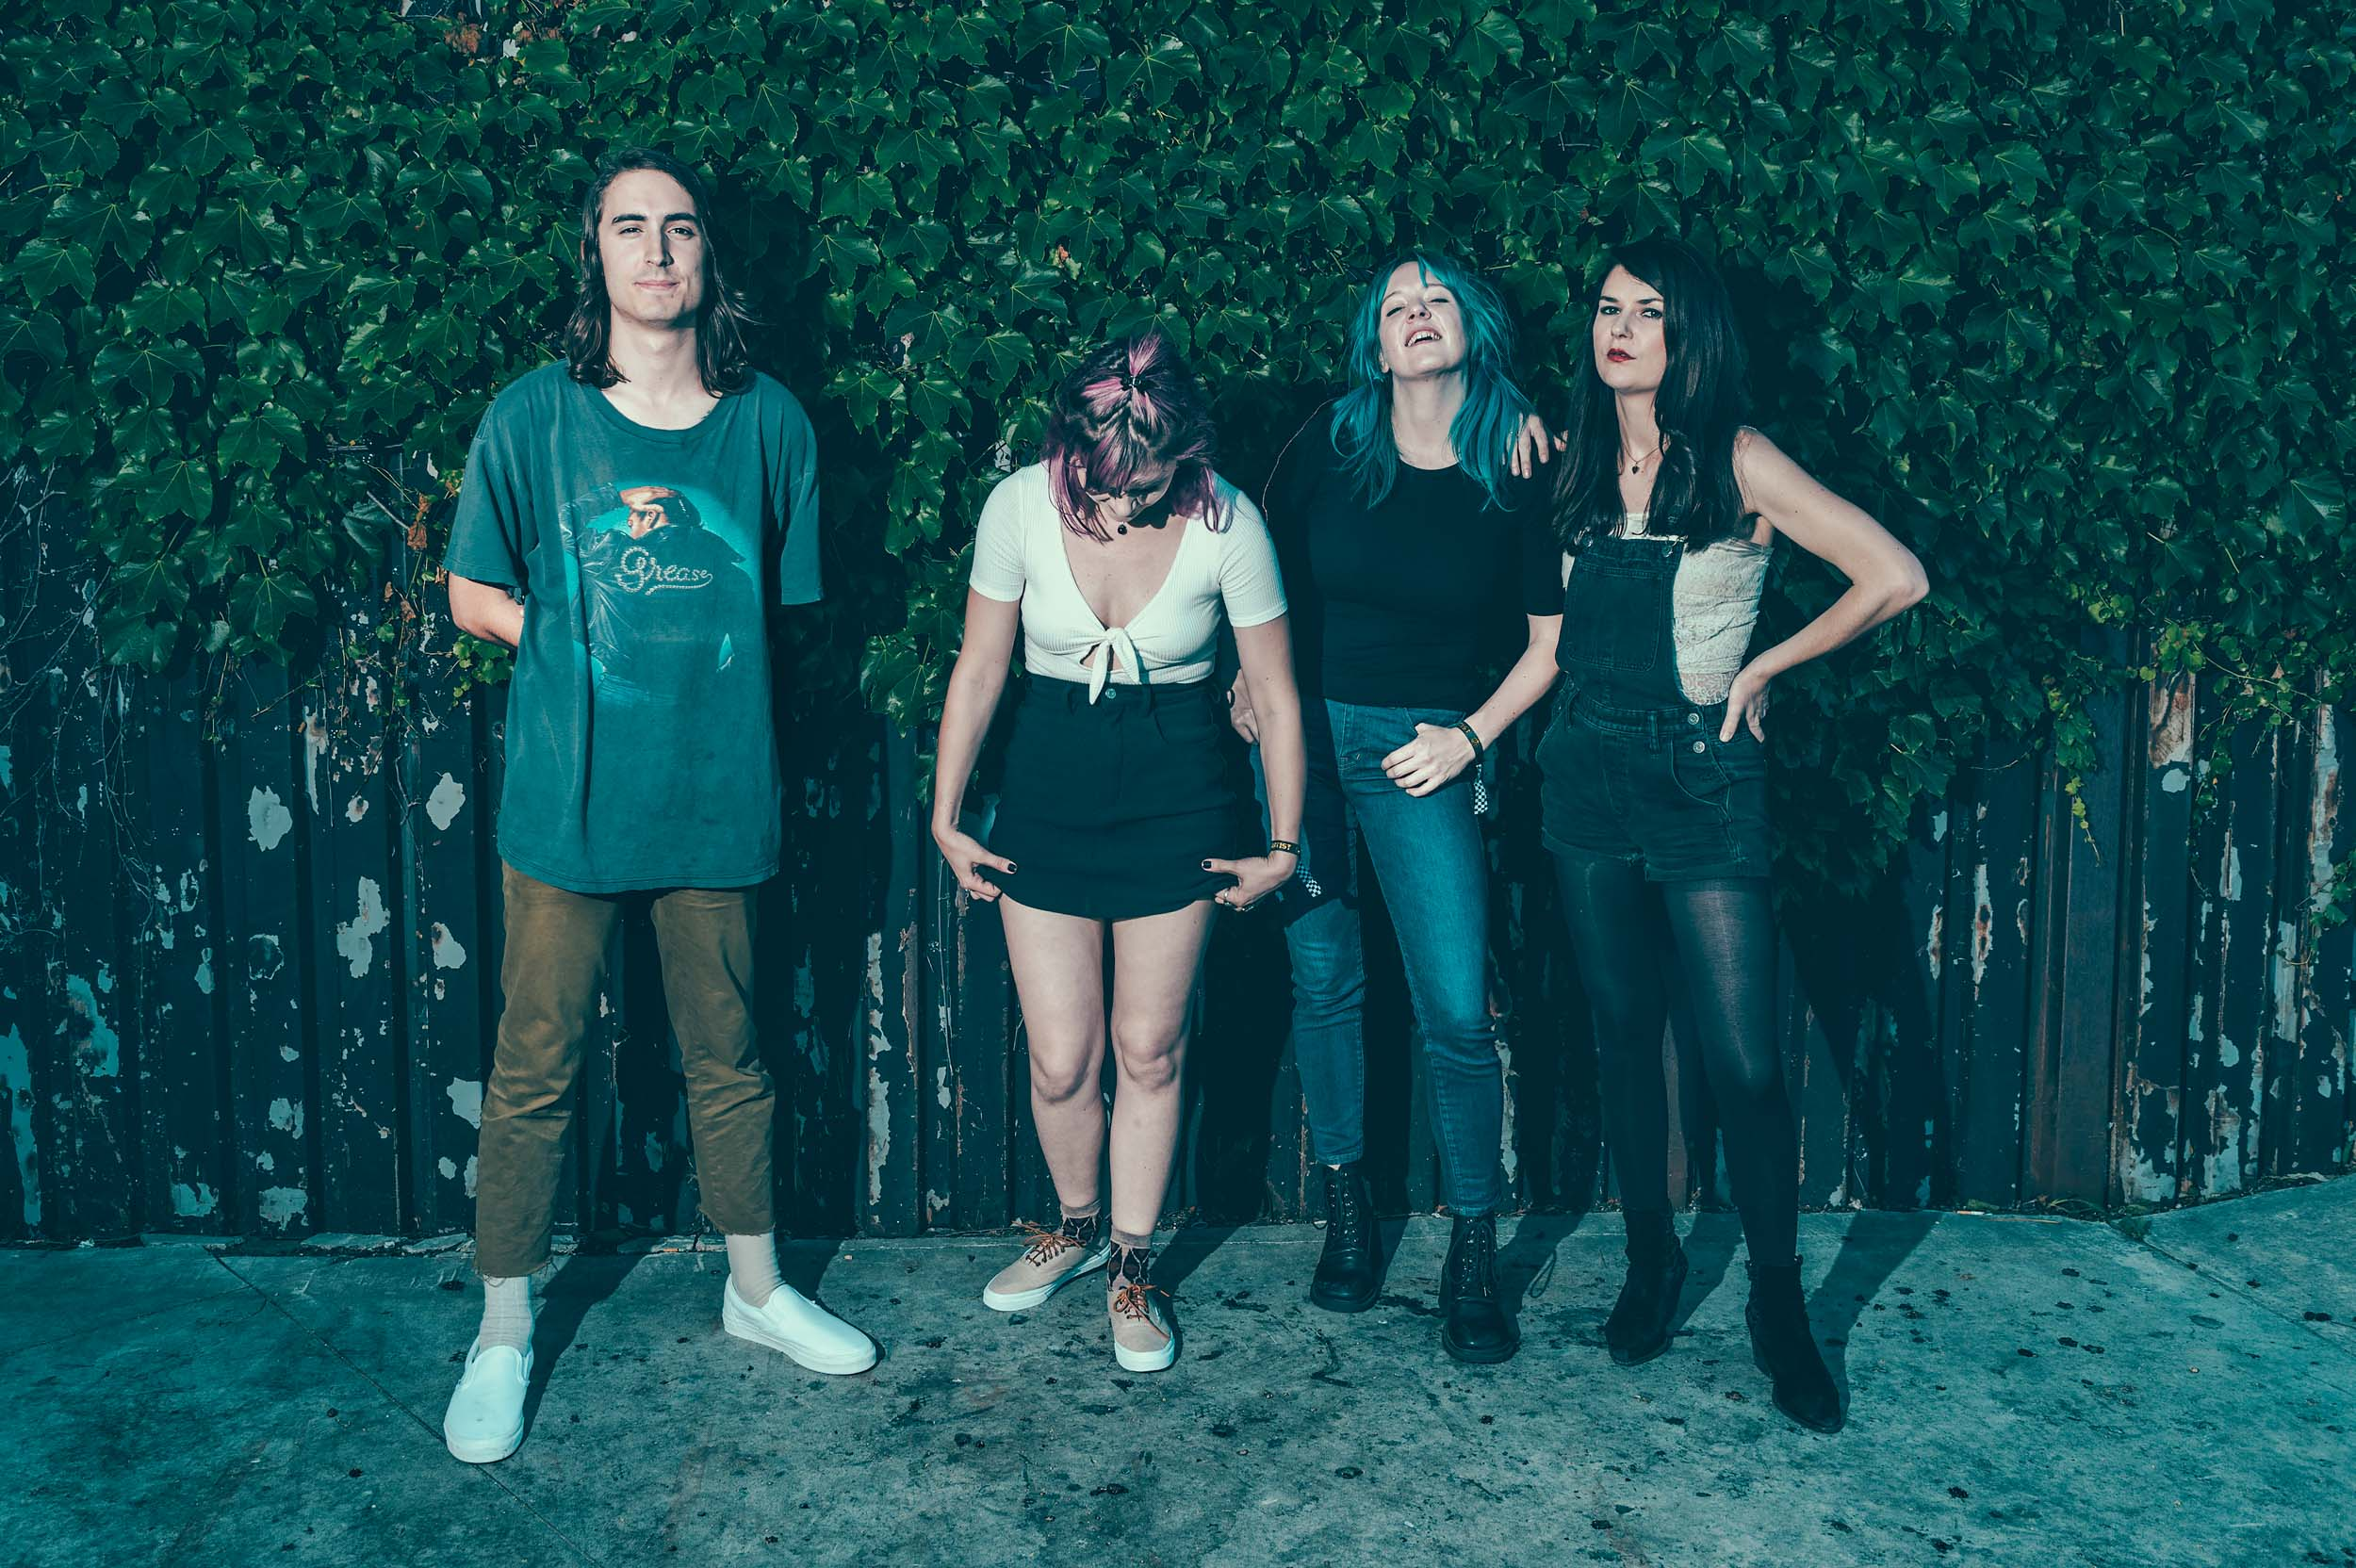 Bleached's Nick Pillot, Jennifer Clavin, Jessica Clavin, and Micayla Grace photographed by Chad Kamenshine